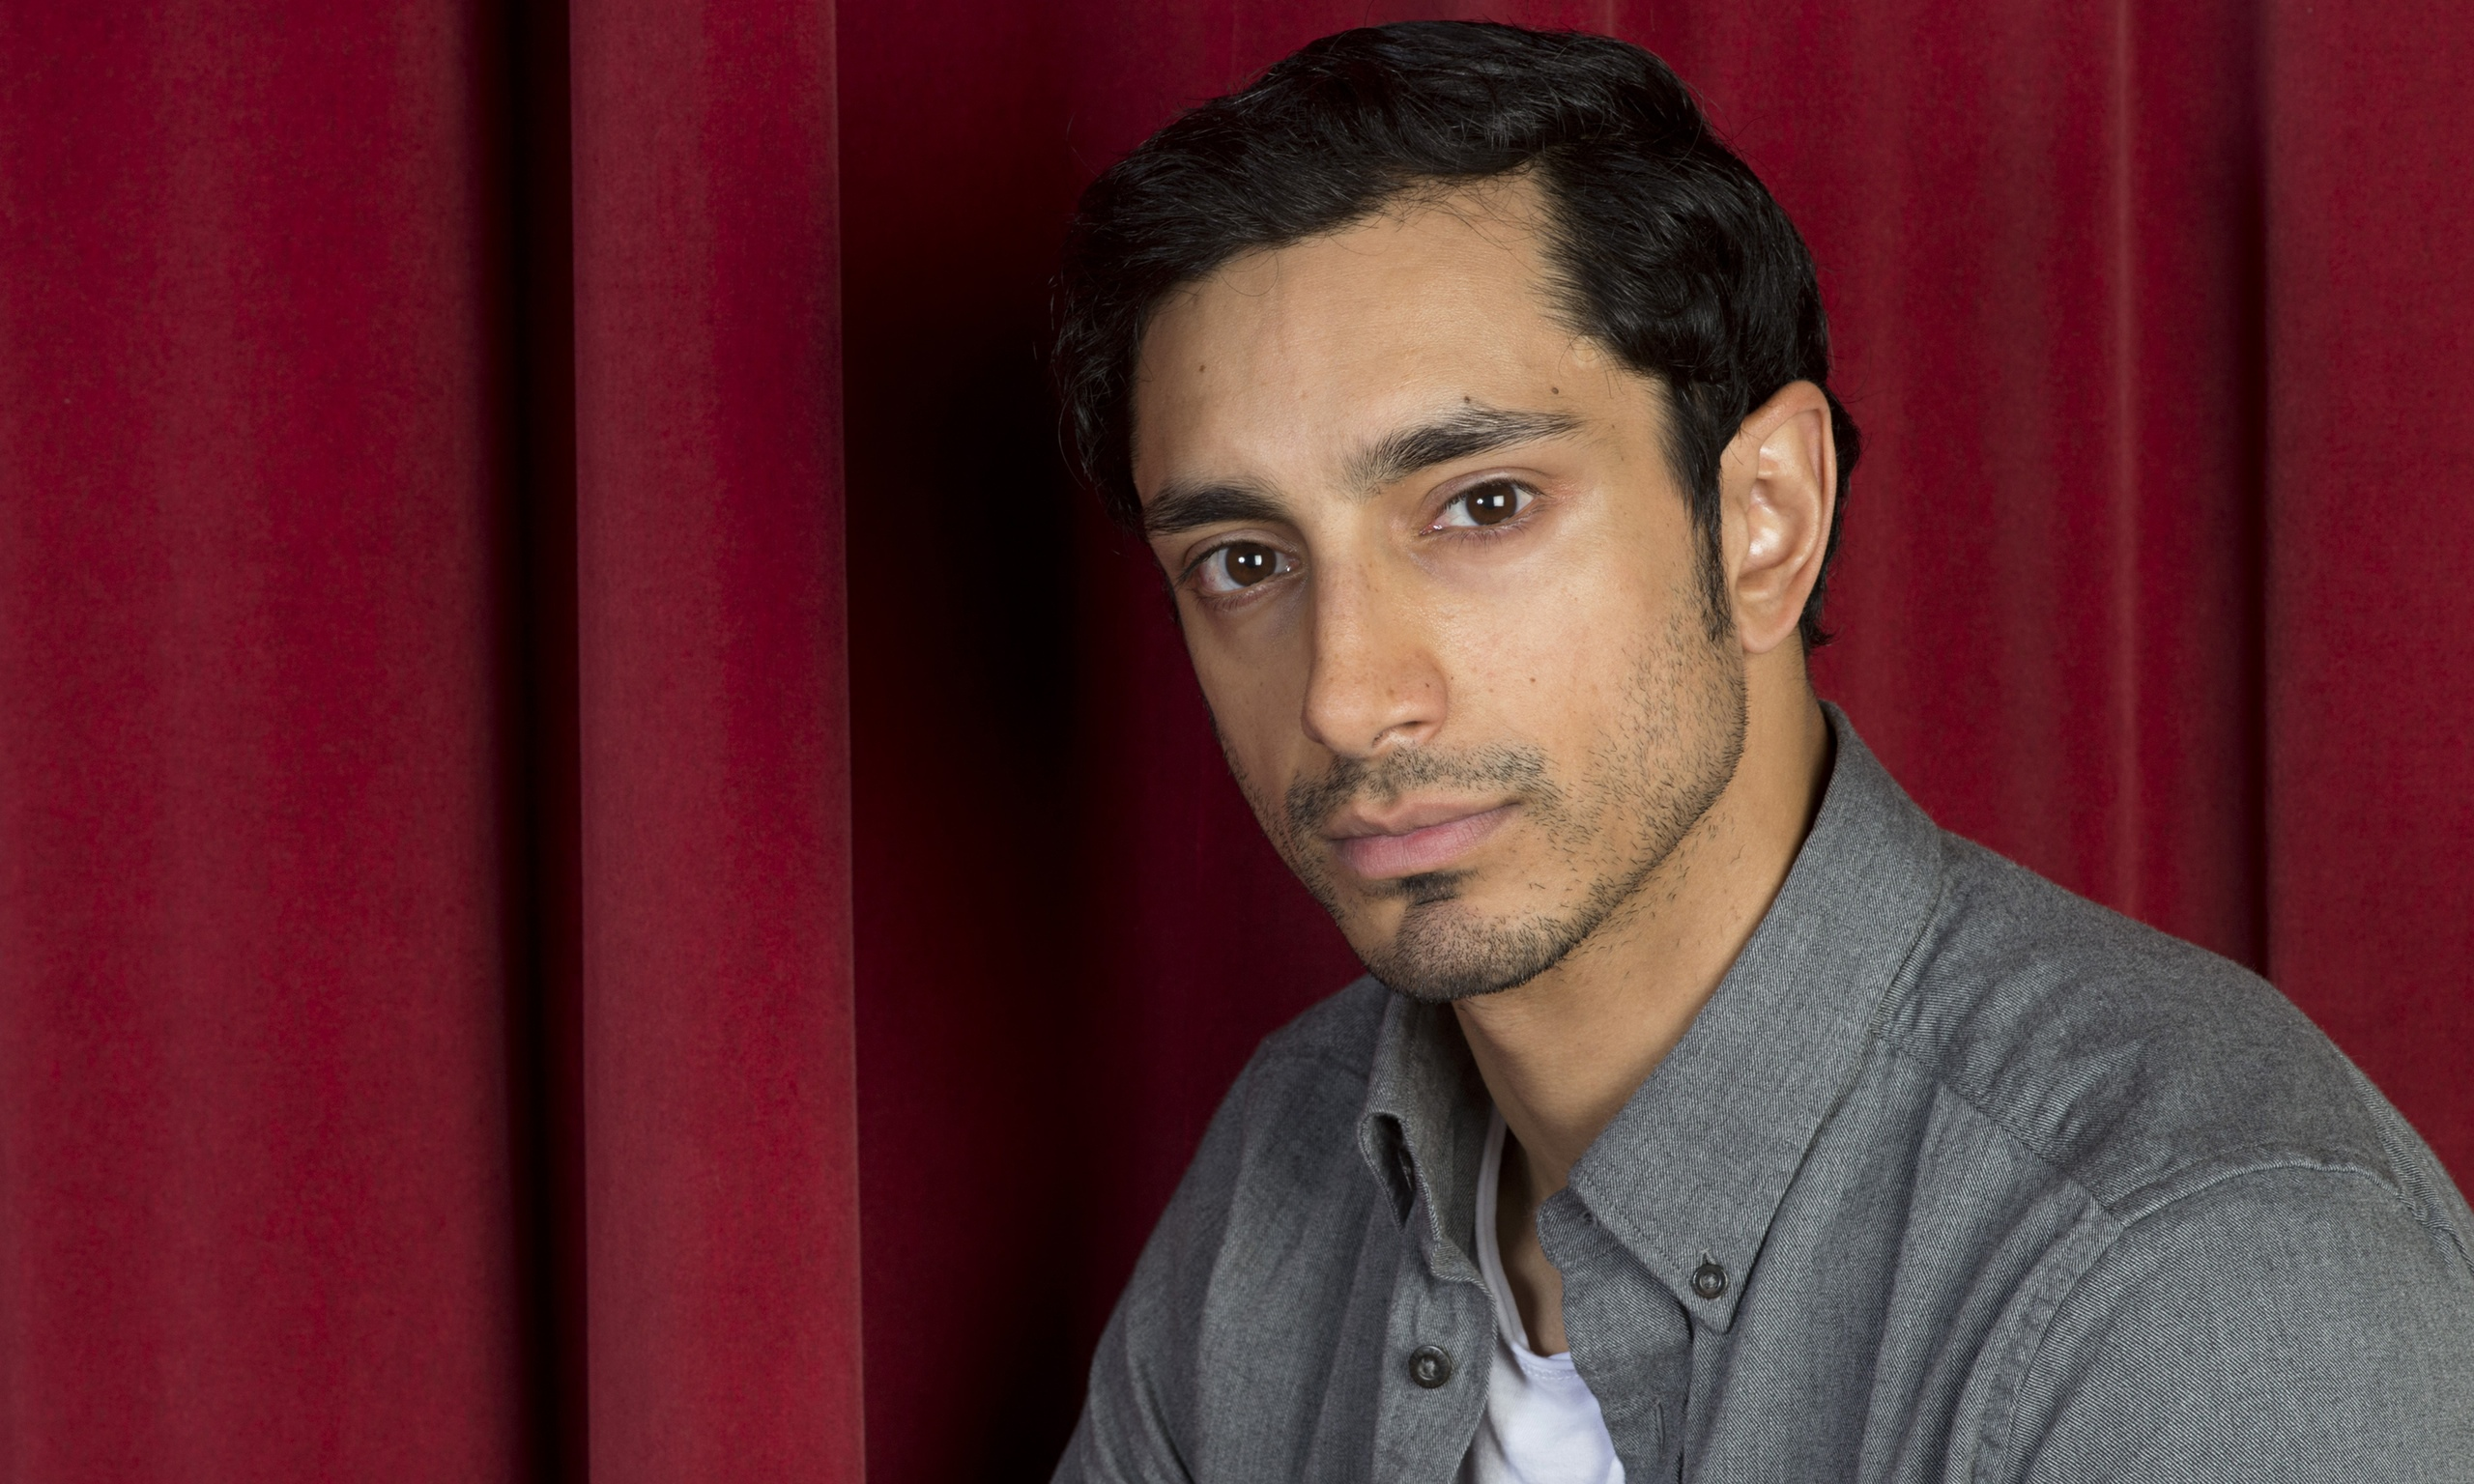 The 34-year old son of father (?) and mother(?), 173 cm tall Riz Ahmed in 2017 photo